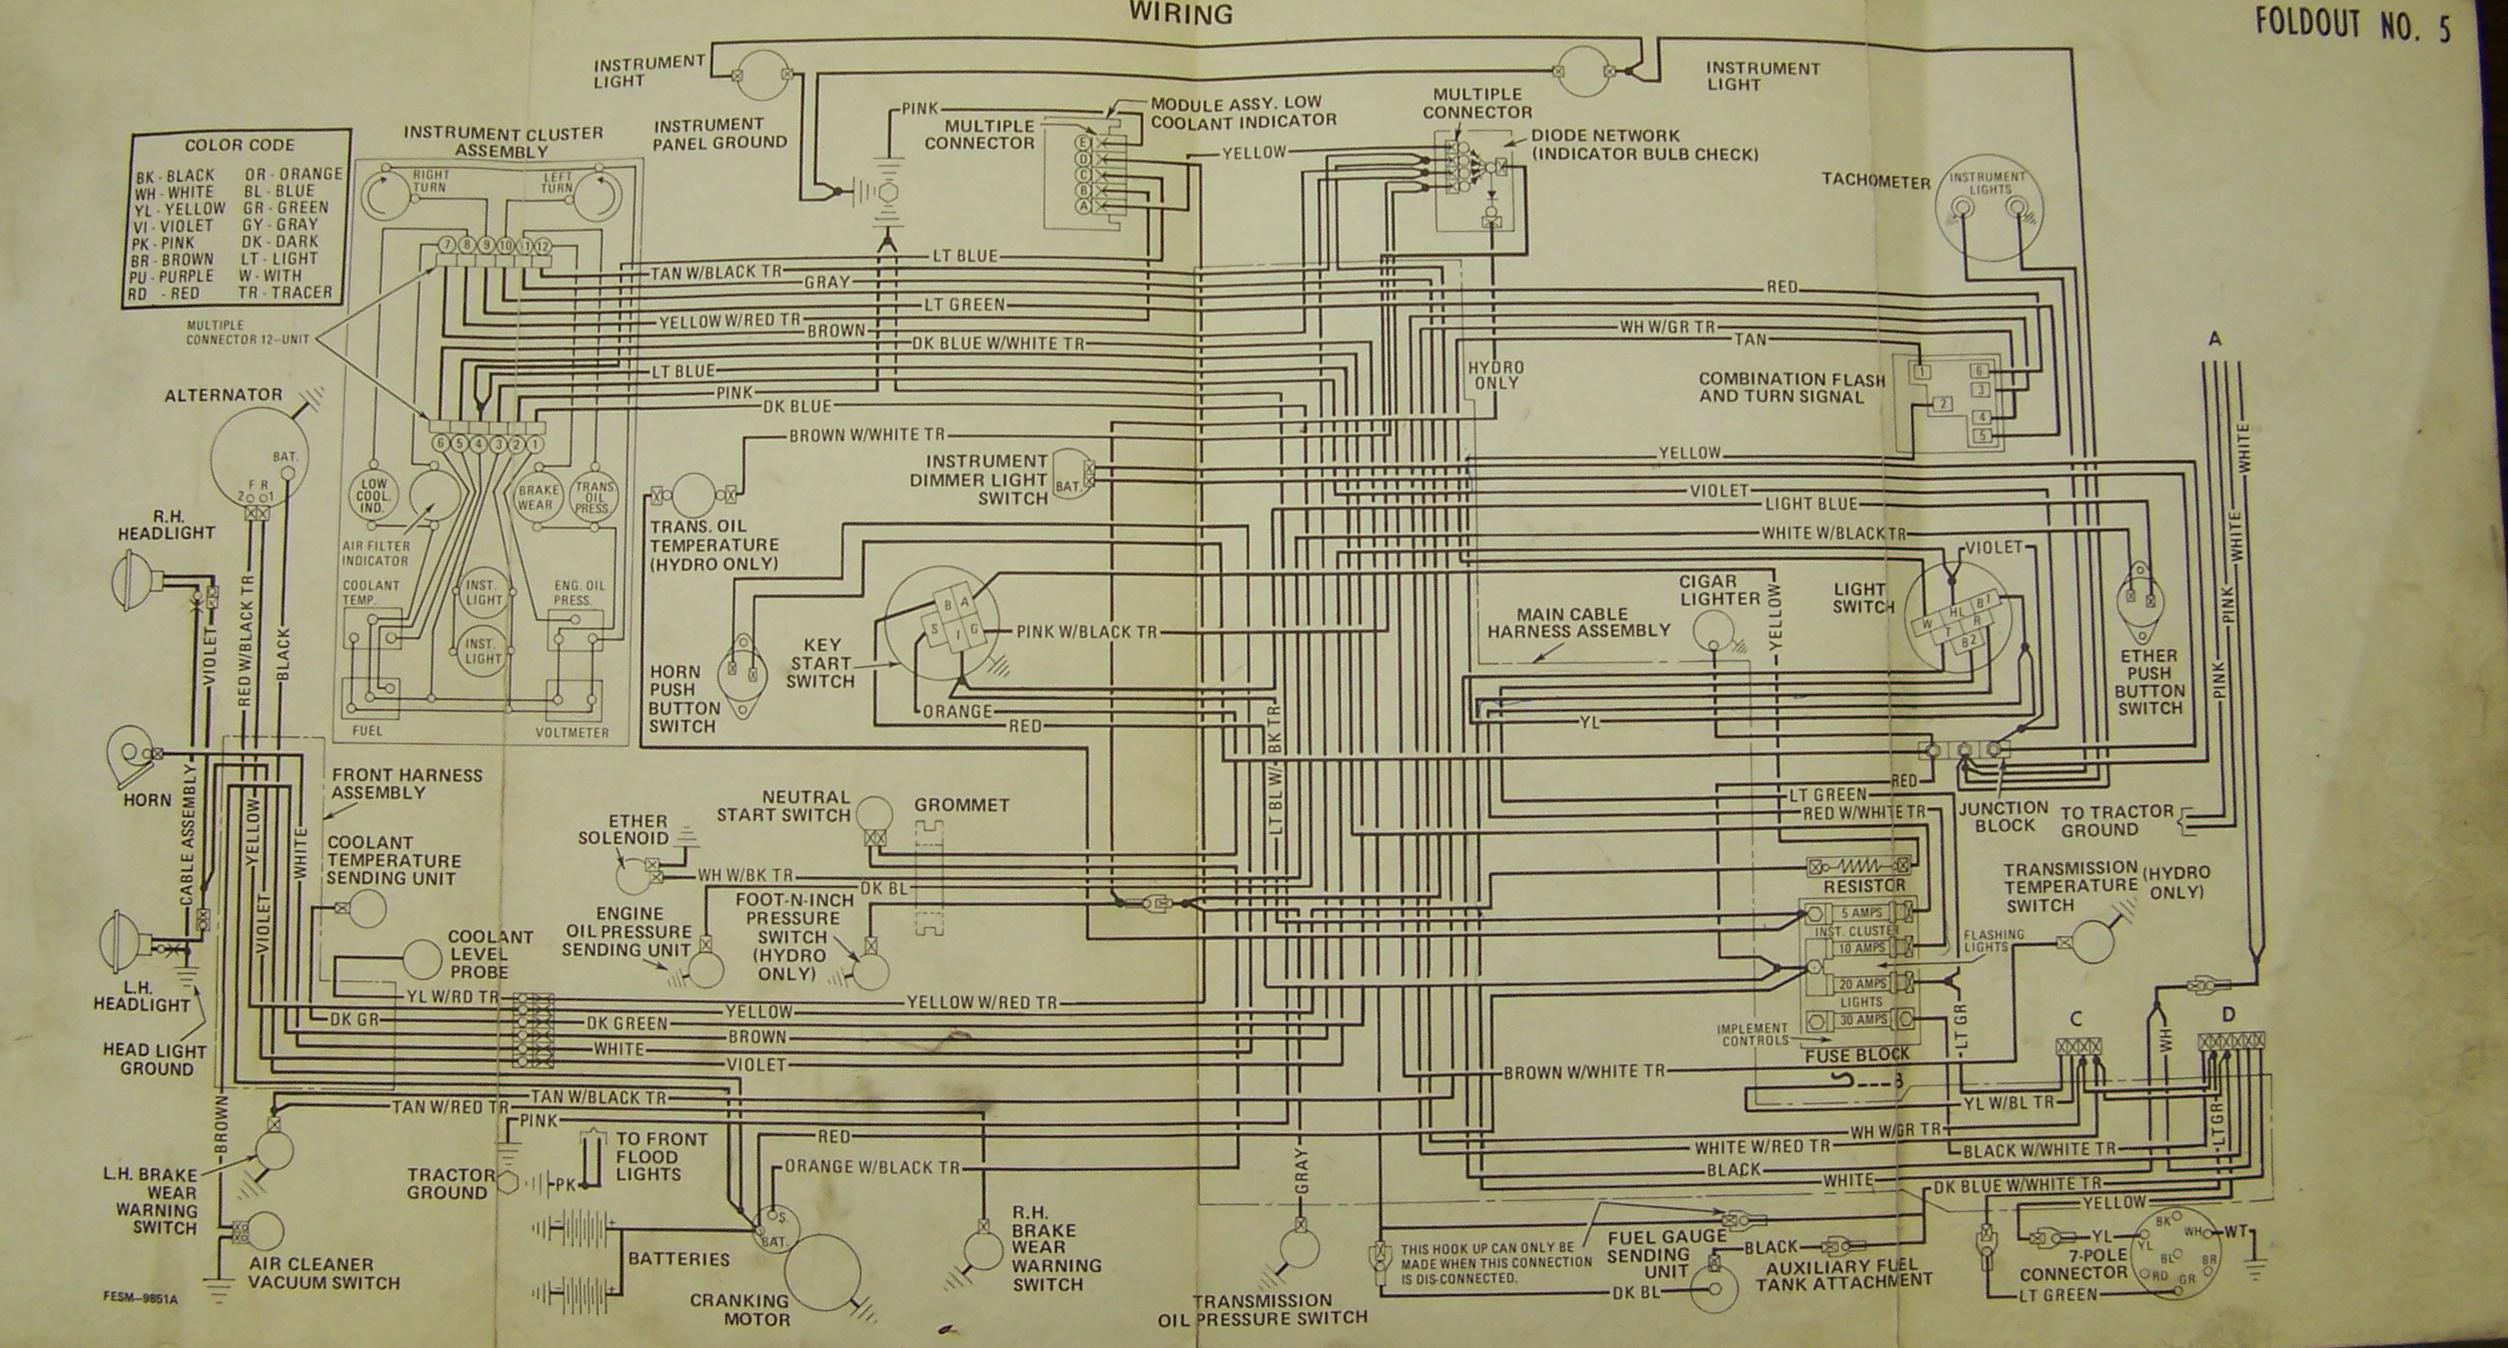 1066 International Wiring Diagram Reveolution Of Sloanled Stripe Wire Carter Gruenewald Co Inc Ih Farmall Tractor Electrical Rh Cngco Com Voltage Regulator